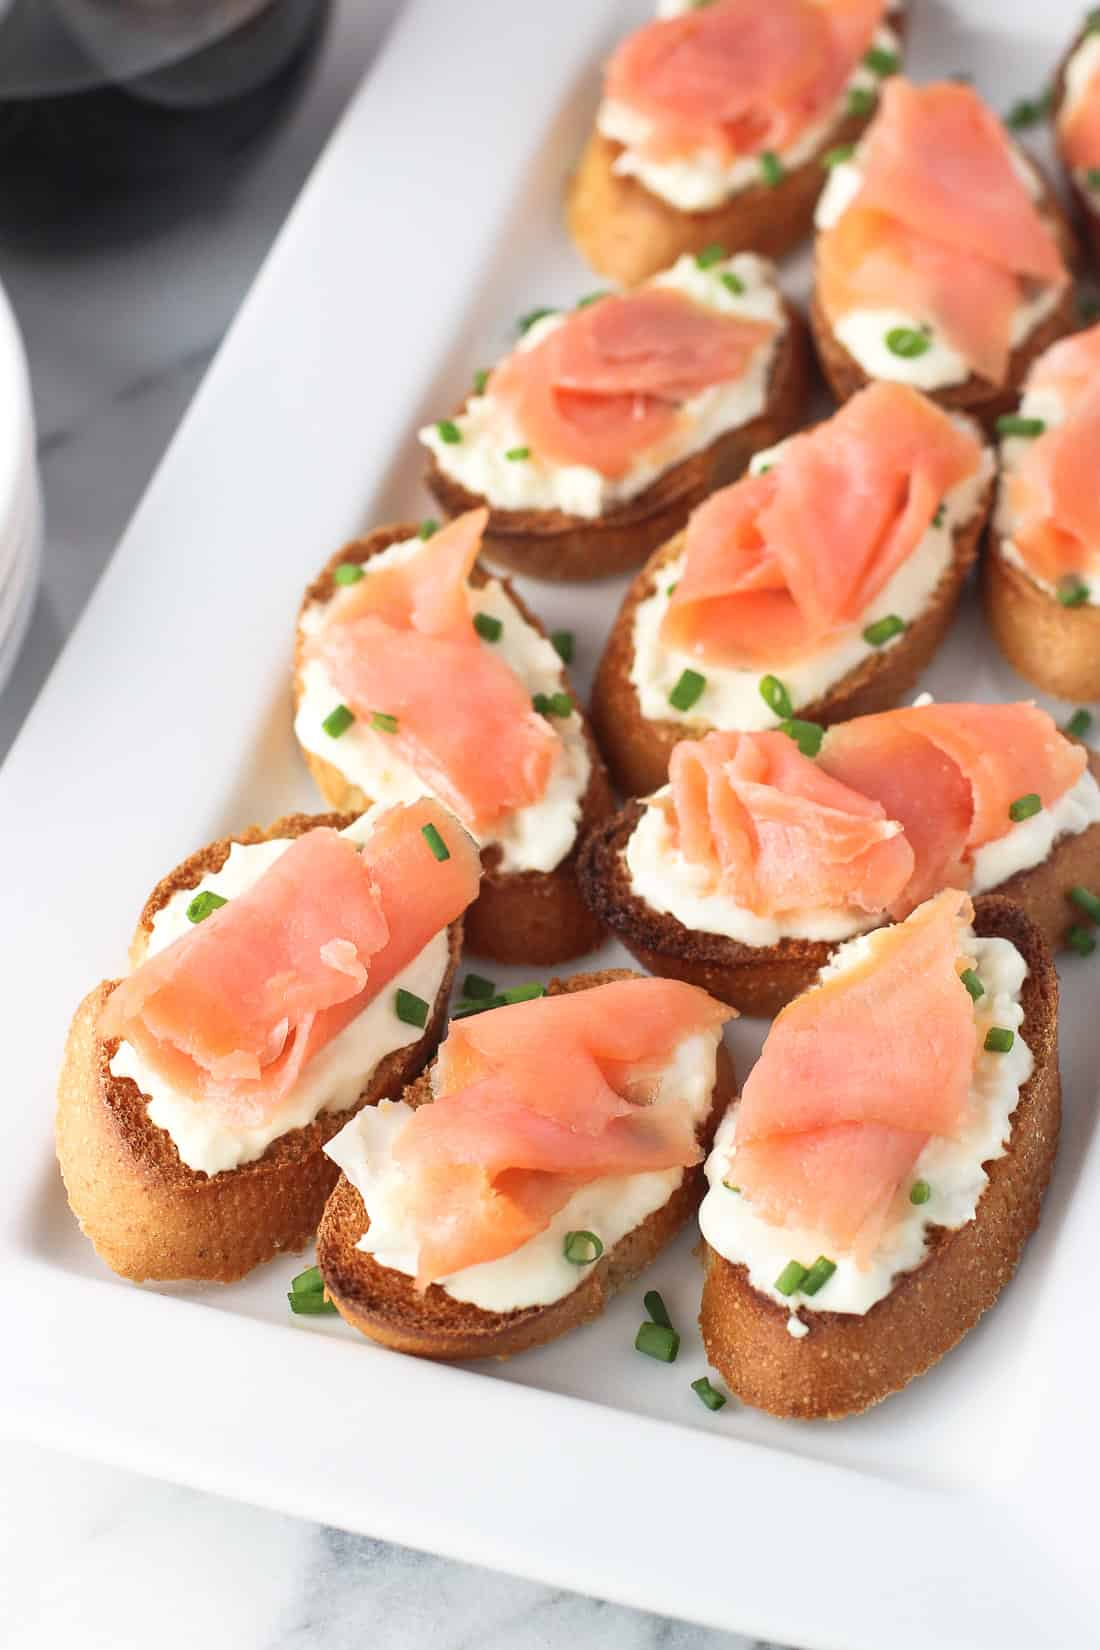 Crostini topped with burrata and a slice of smoked salmon on a tray.